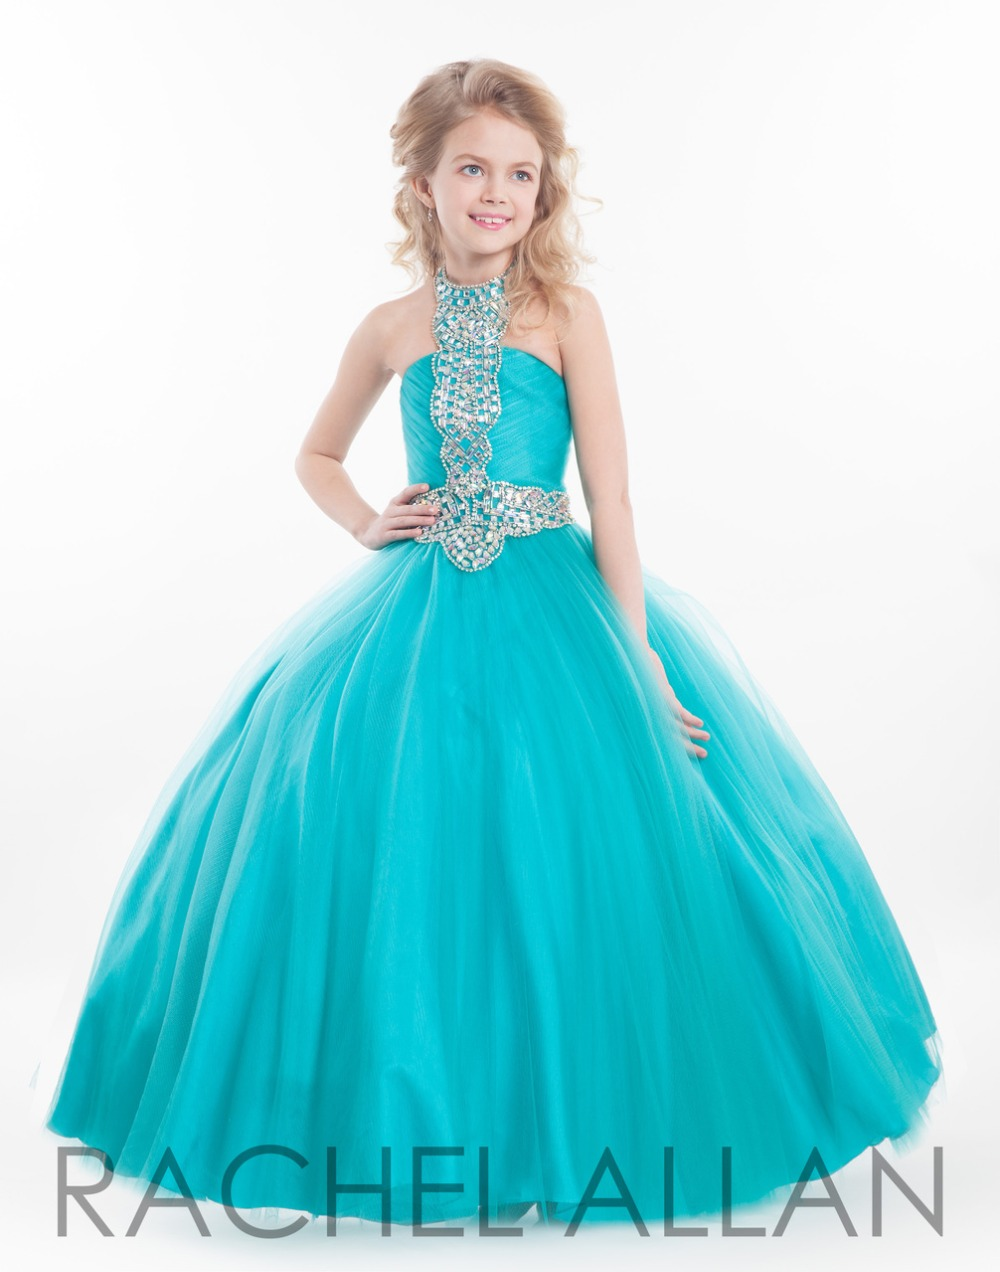 2016 Girls Pageant Gowns Halter Neck Tulle Ball Gown Prom ... Kids Formal Dresses